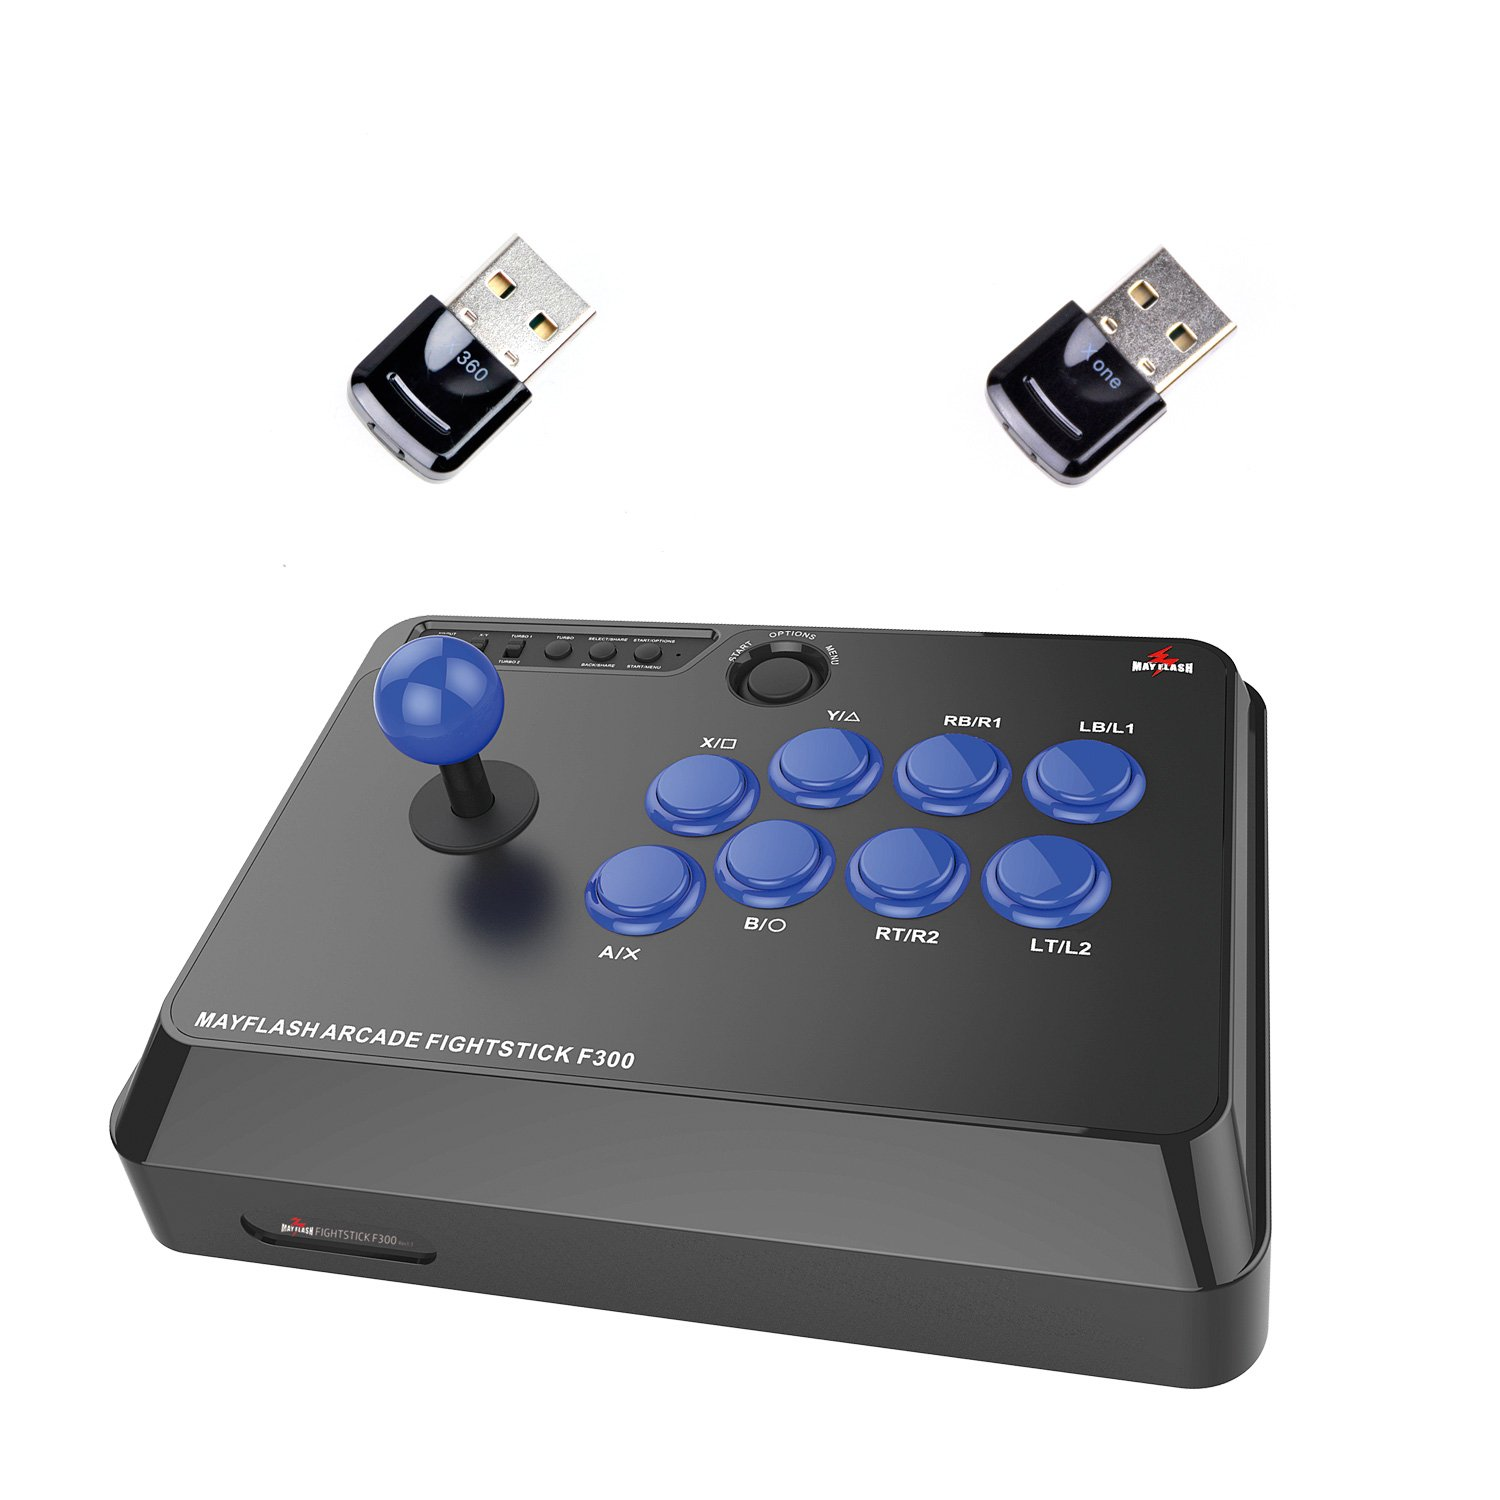 MAYFLASH F300 Arcade FightStick and MAGICBOOTS Bundle for Xbox 360/Xbox One